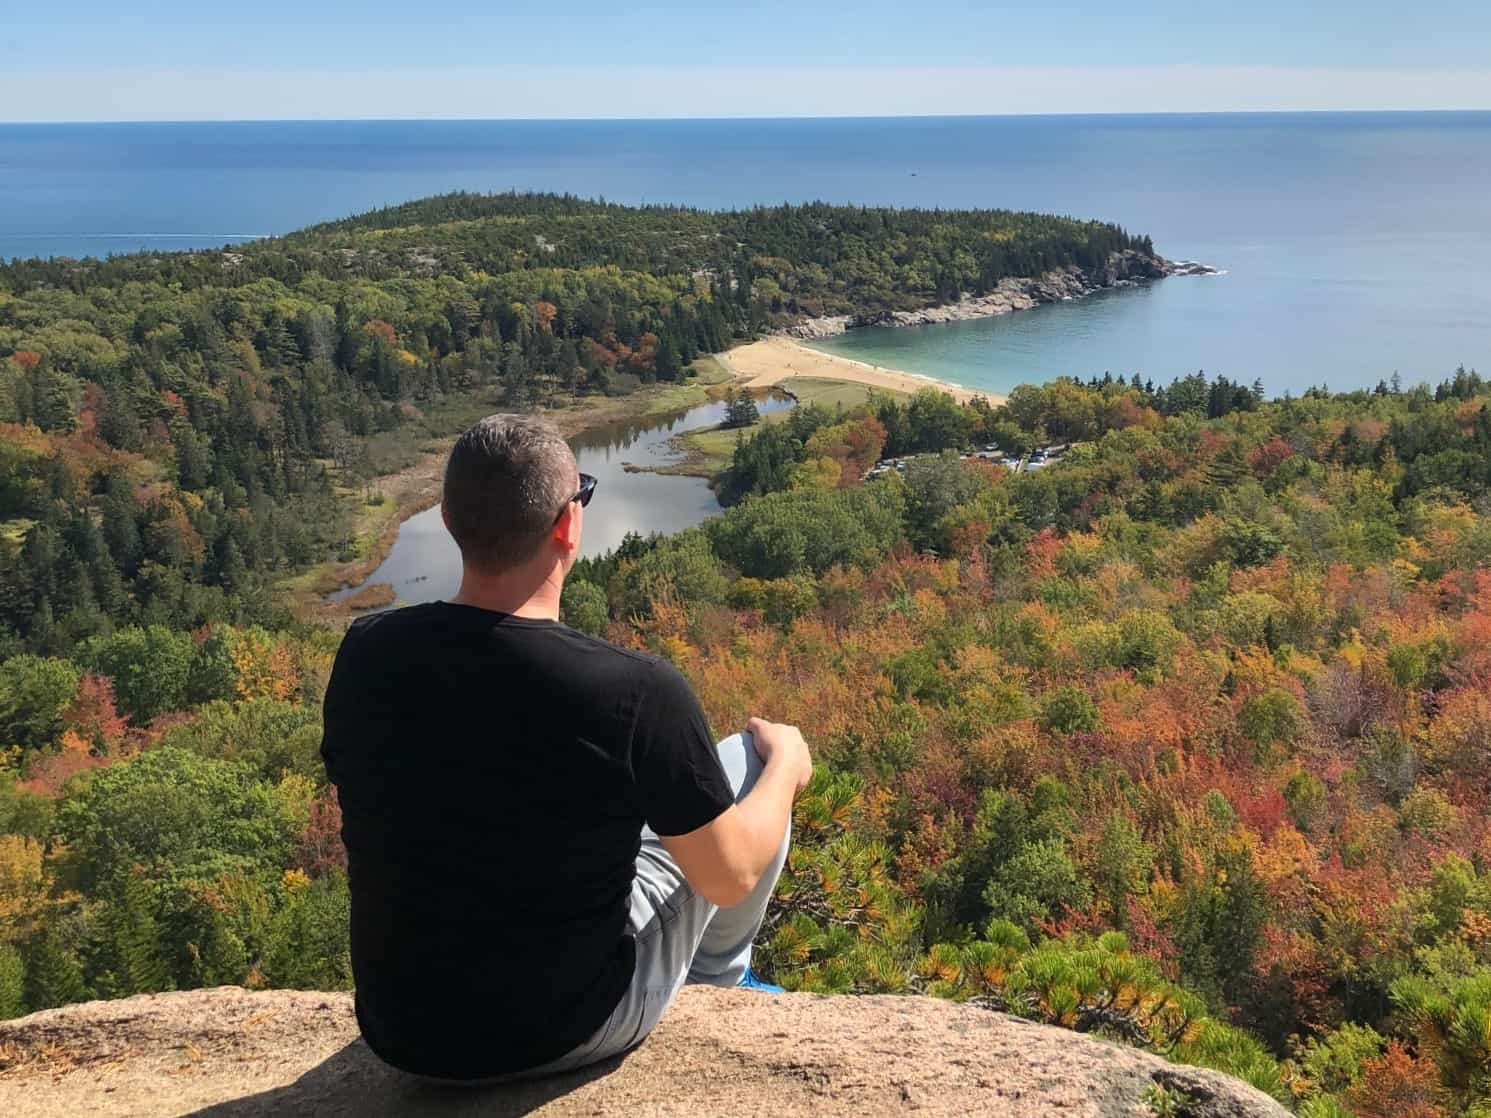 Acadia National Park is one of the top 10 most beautiful u.s. national parks